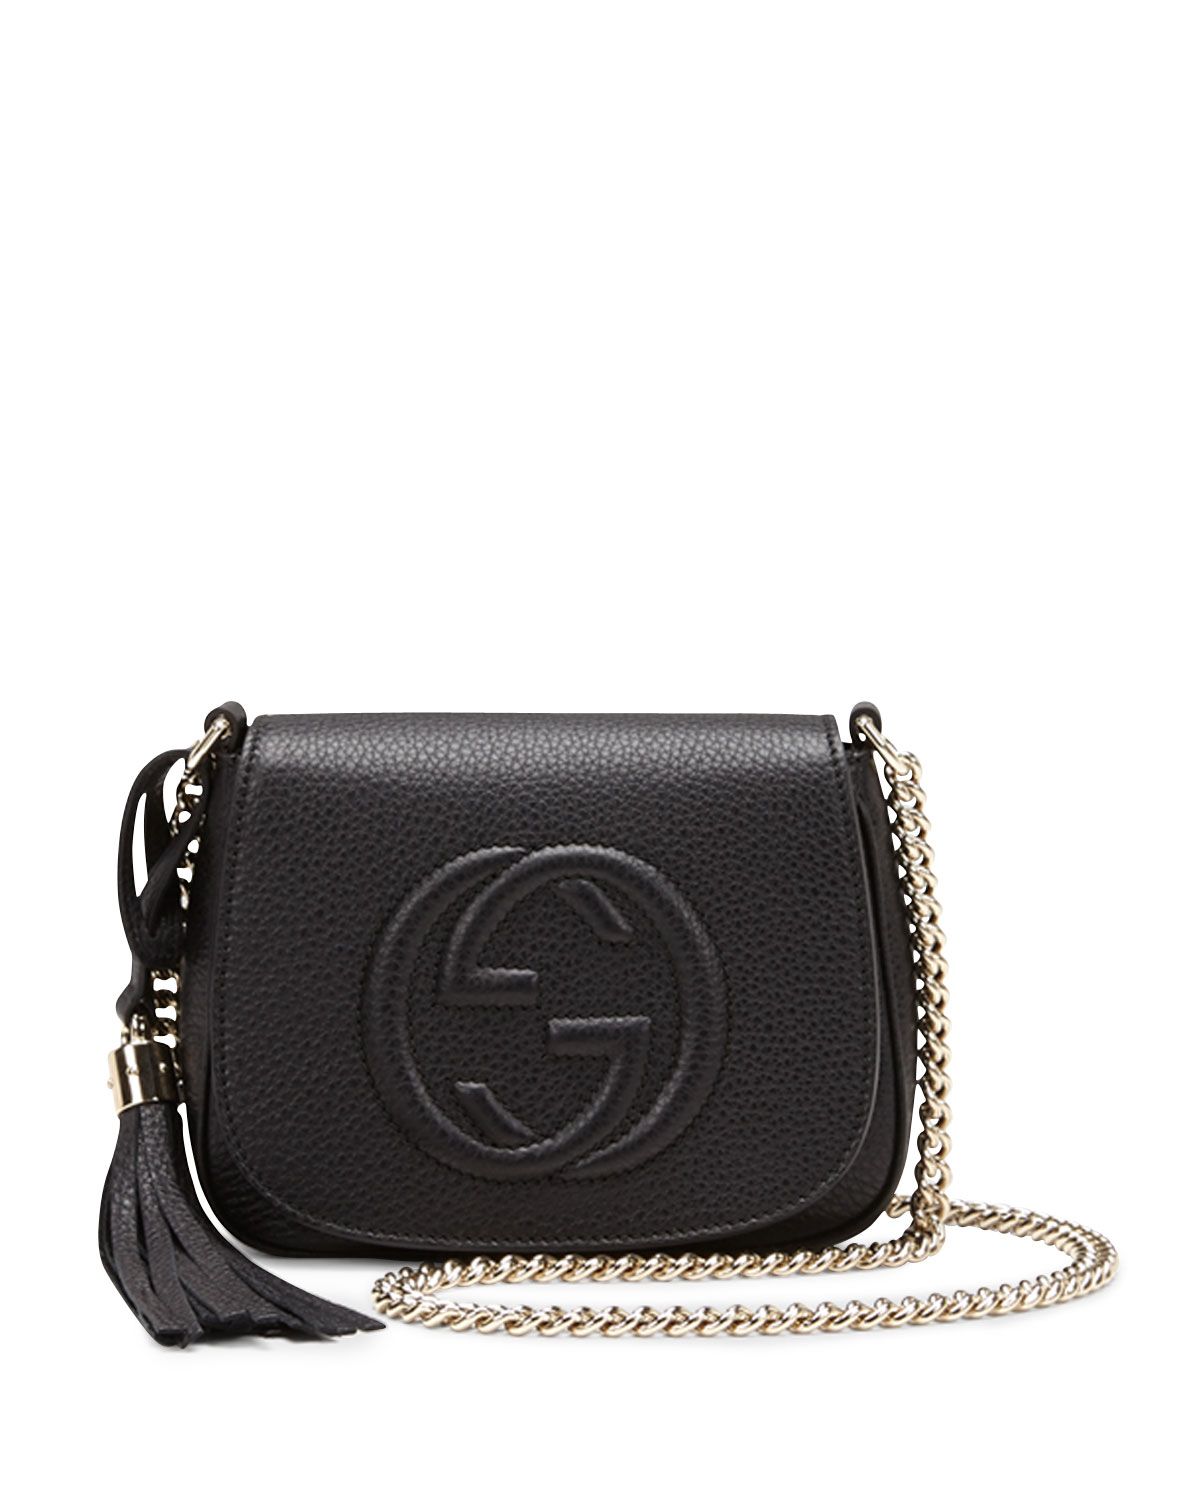 lyst gucci soho leather chain crossbody bag in black. Black Bedroom Furniture Sets. Home Design Ideas